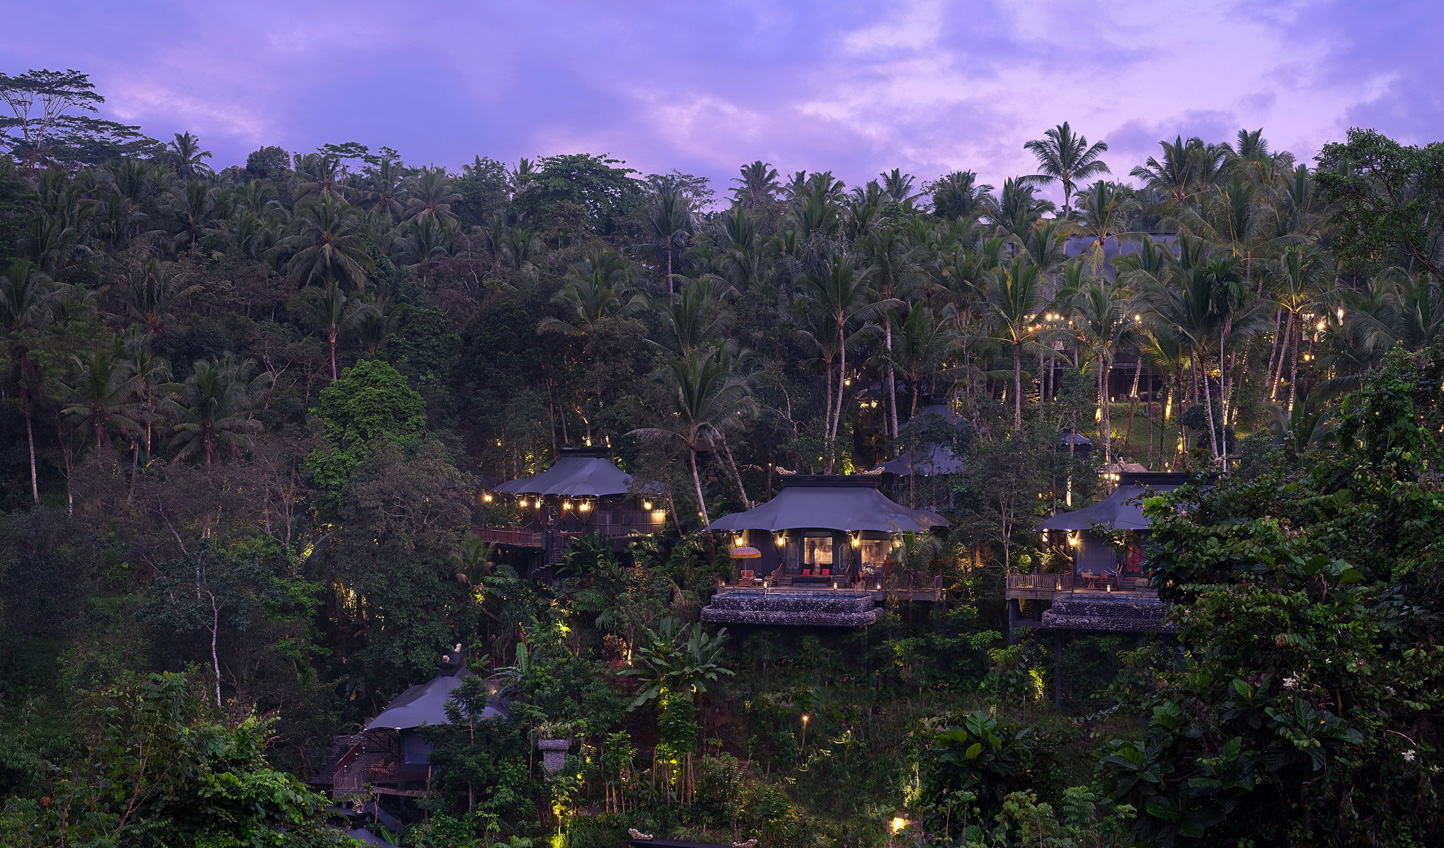 Discover a spirit of adventure at Capella Ubud